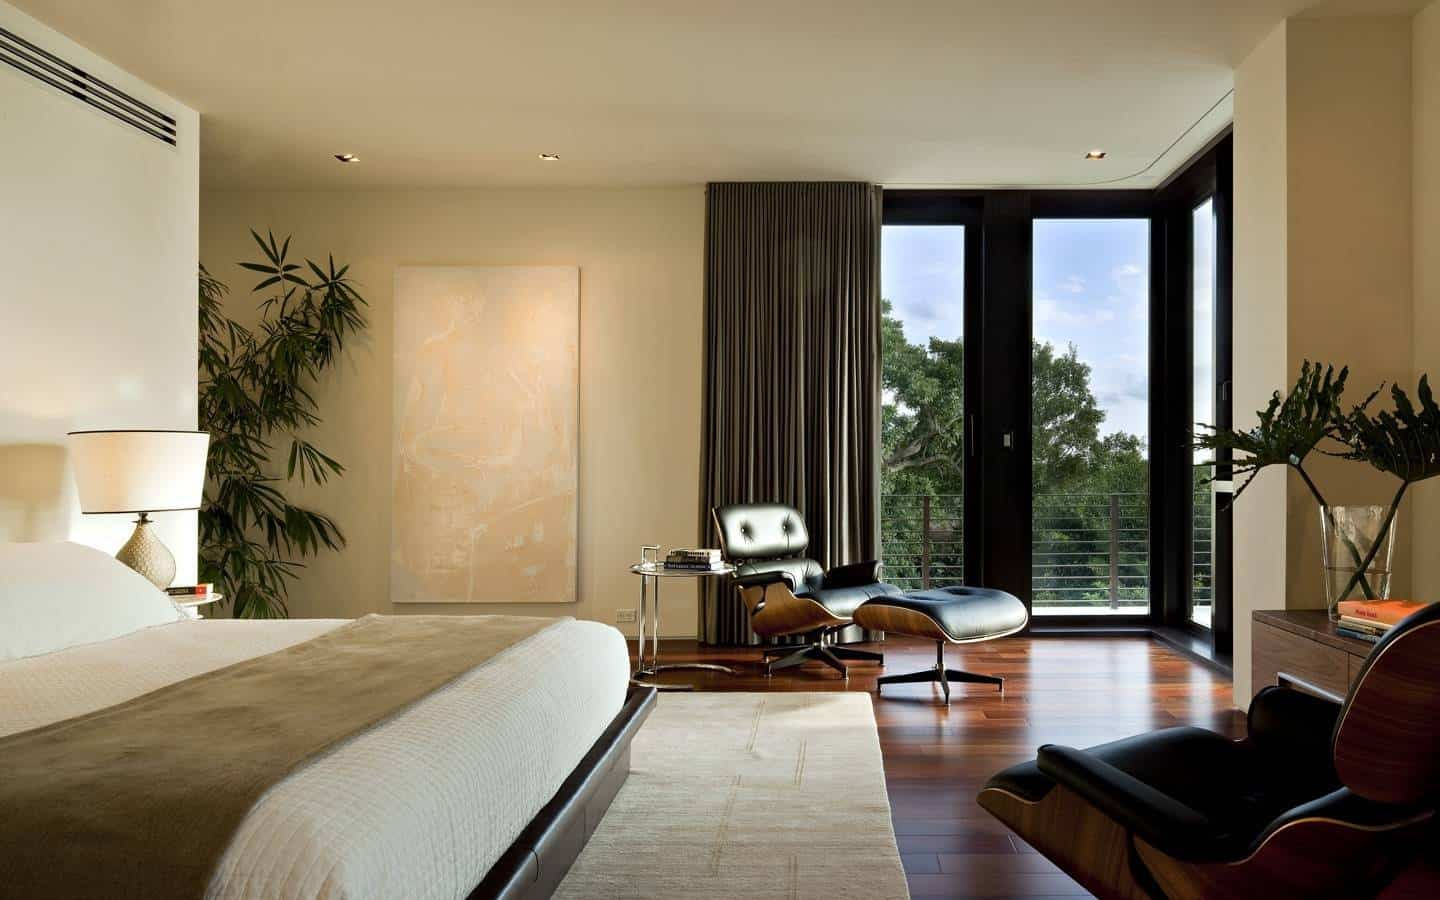 Medium-sized primary bedroom with glass sliding doors, indoor plants, stylish reclining chairs, and hardwood flooring.